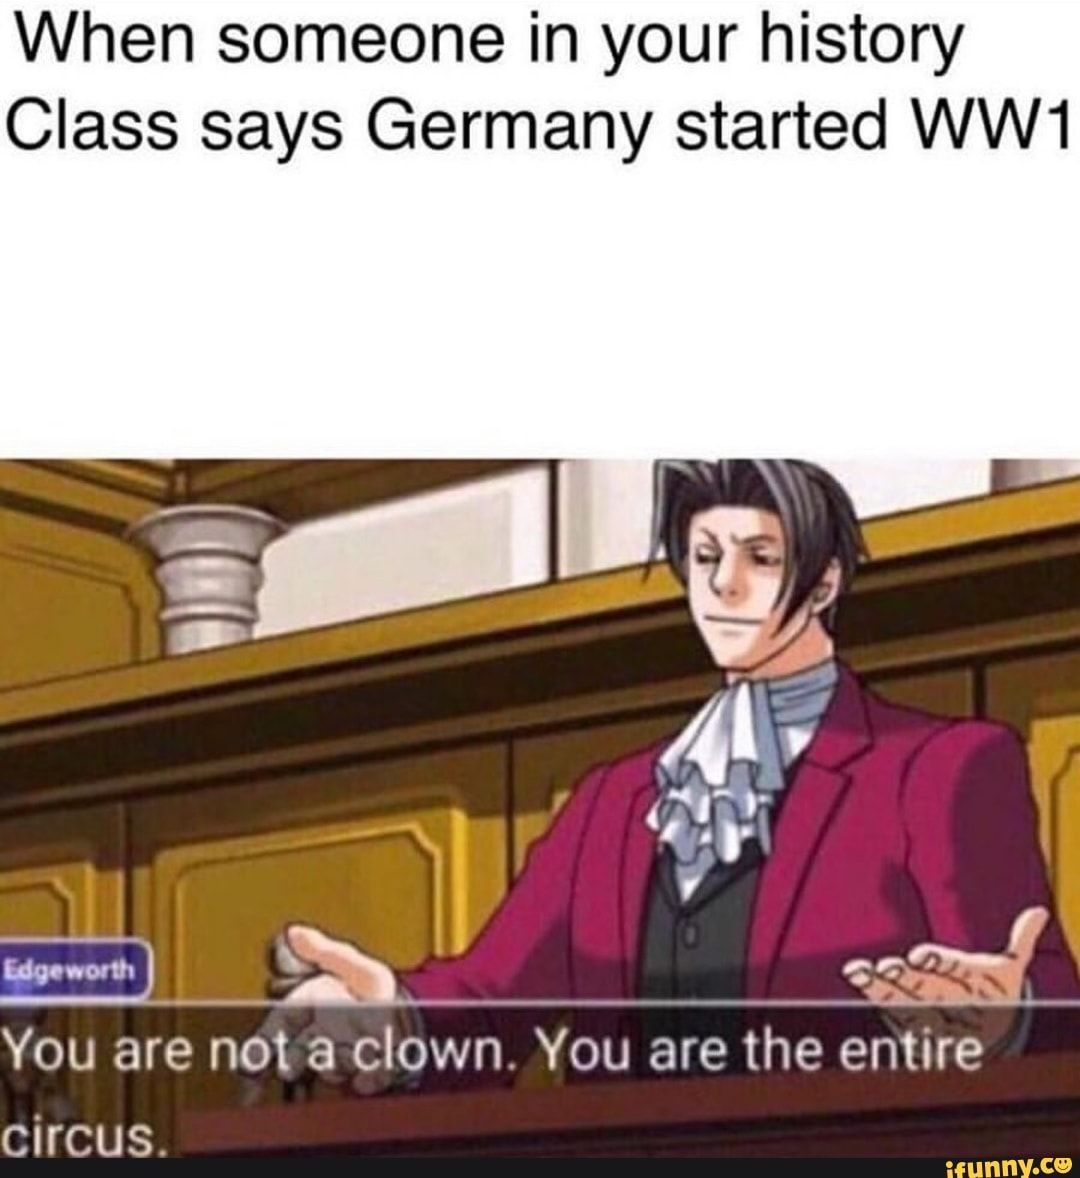 When someone in your history Class says Germany started